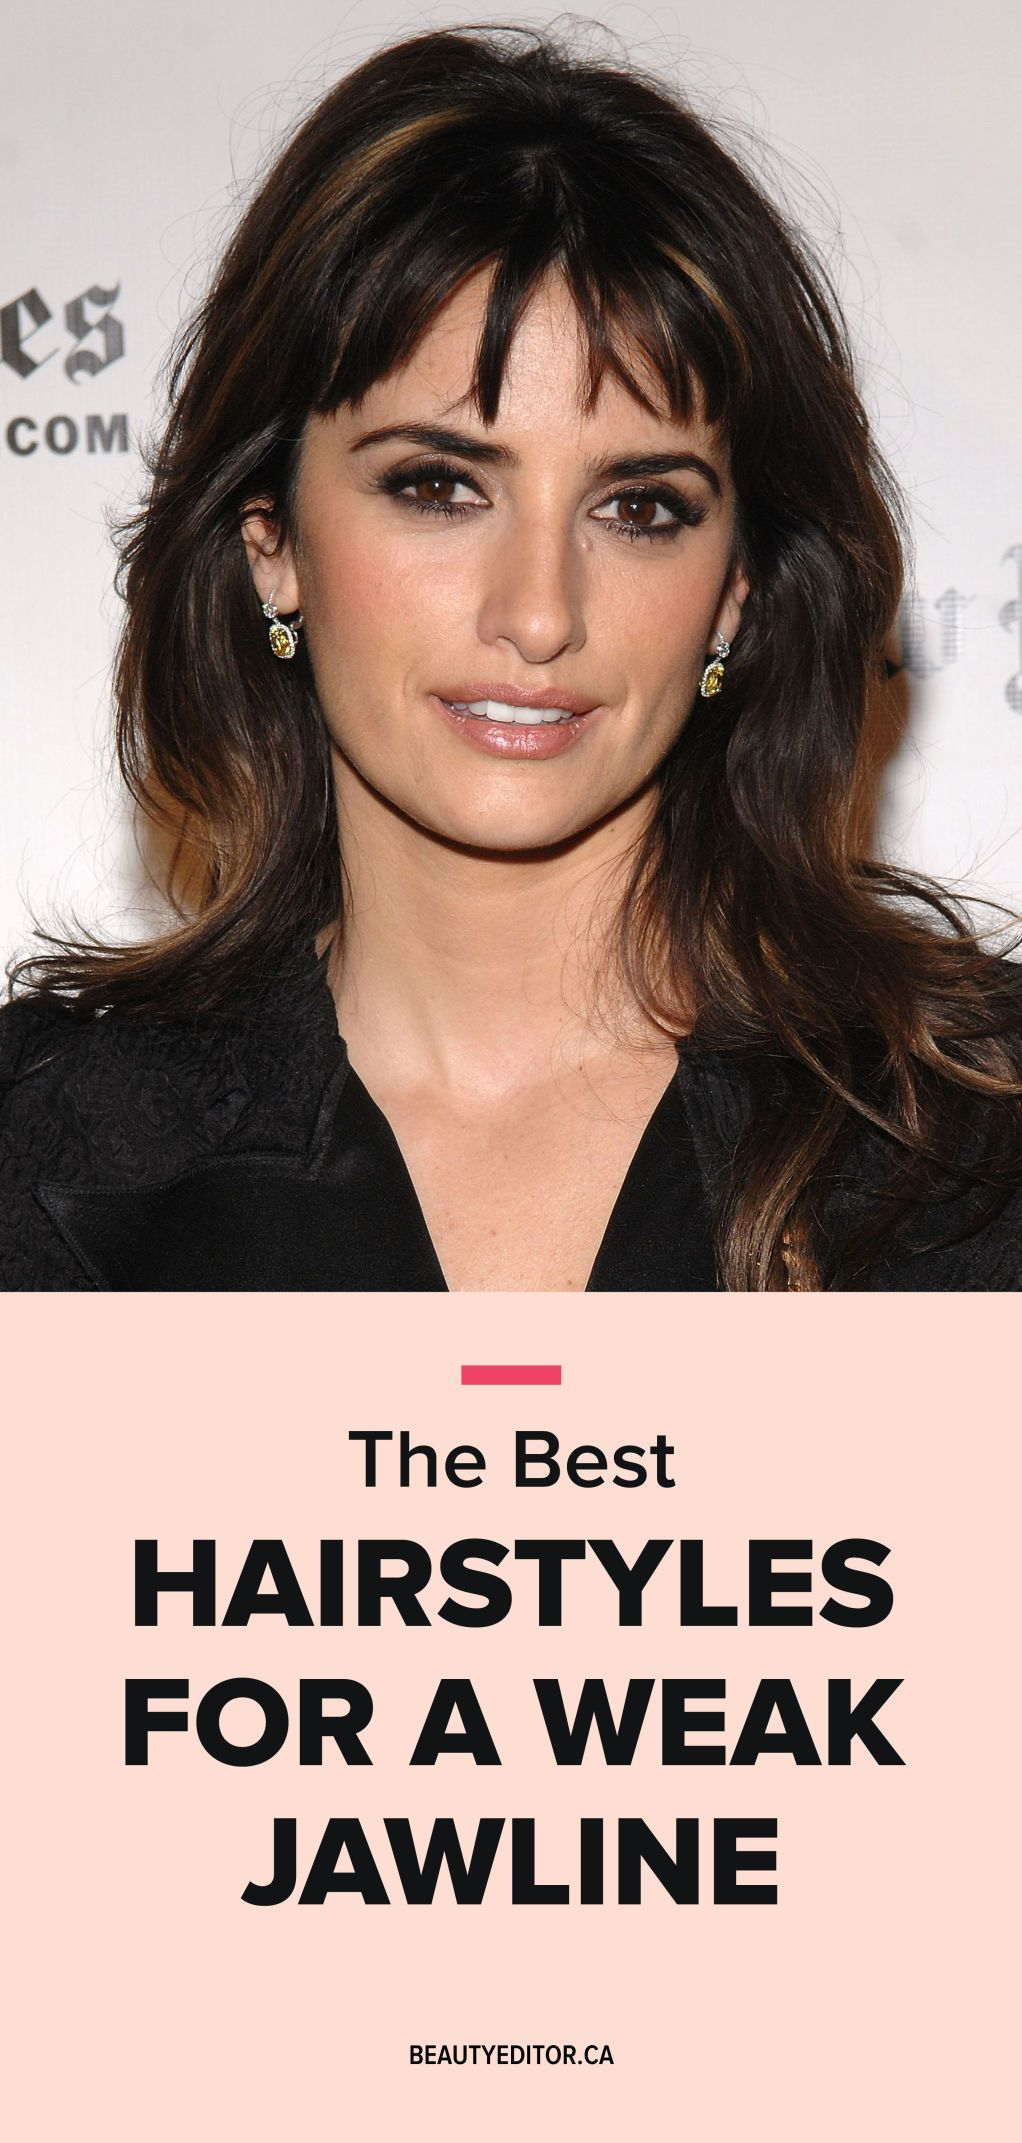 The Best Hairstyles for a Weak Jawline Beautyeditor